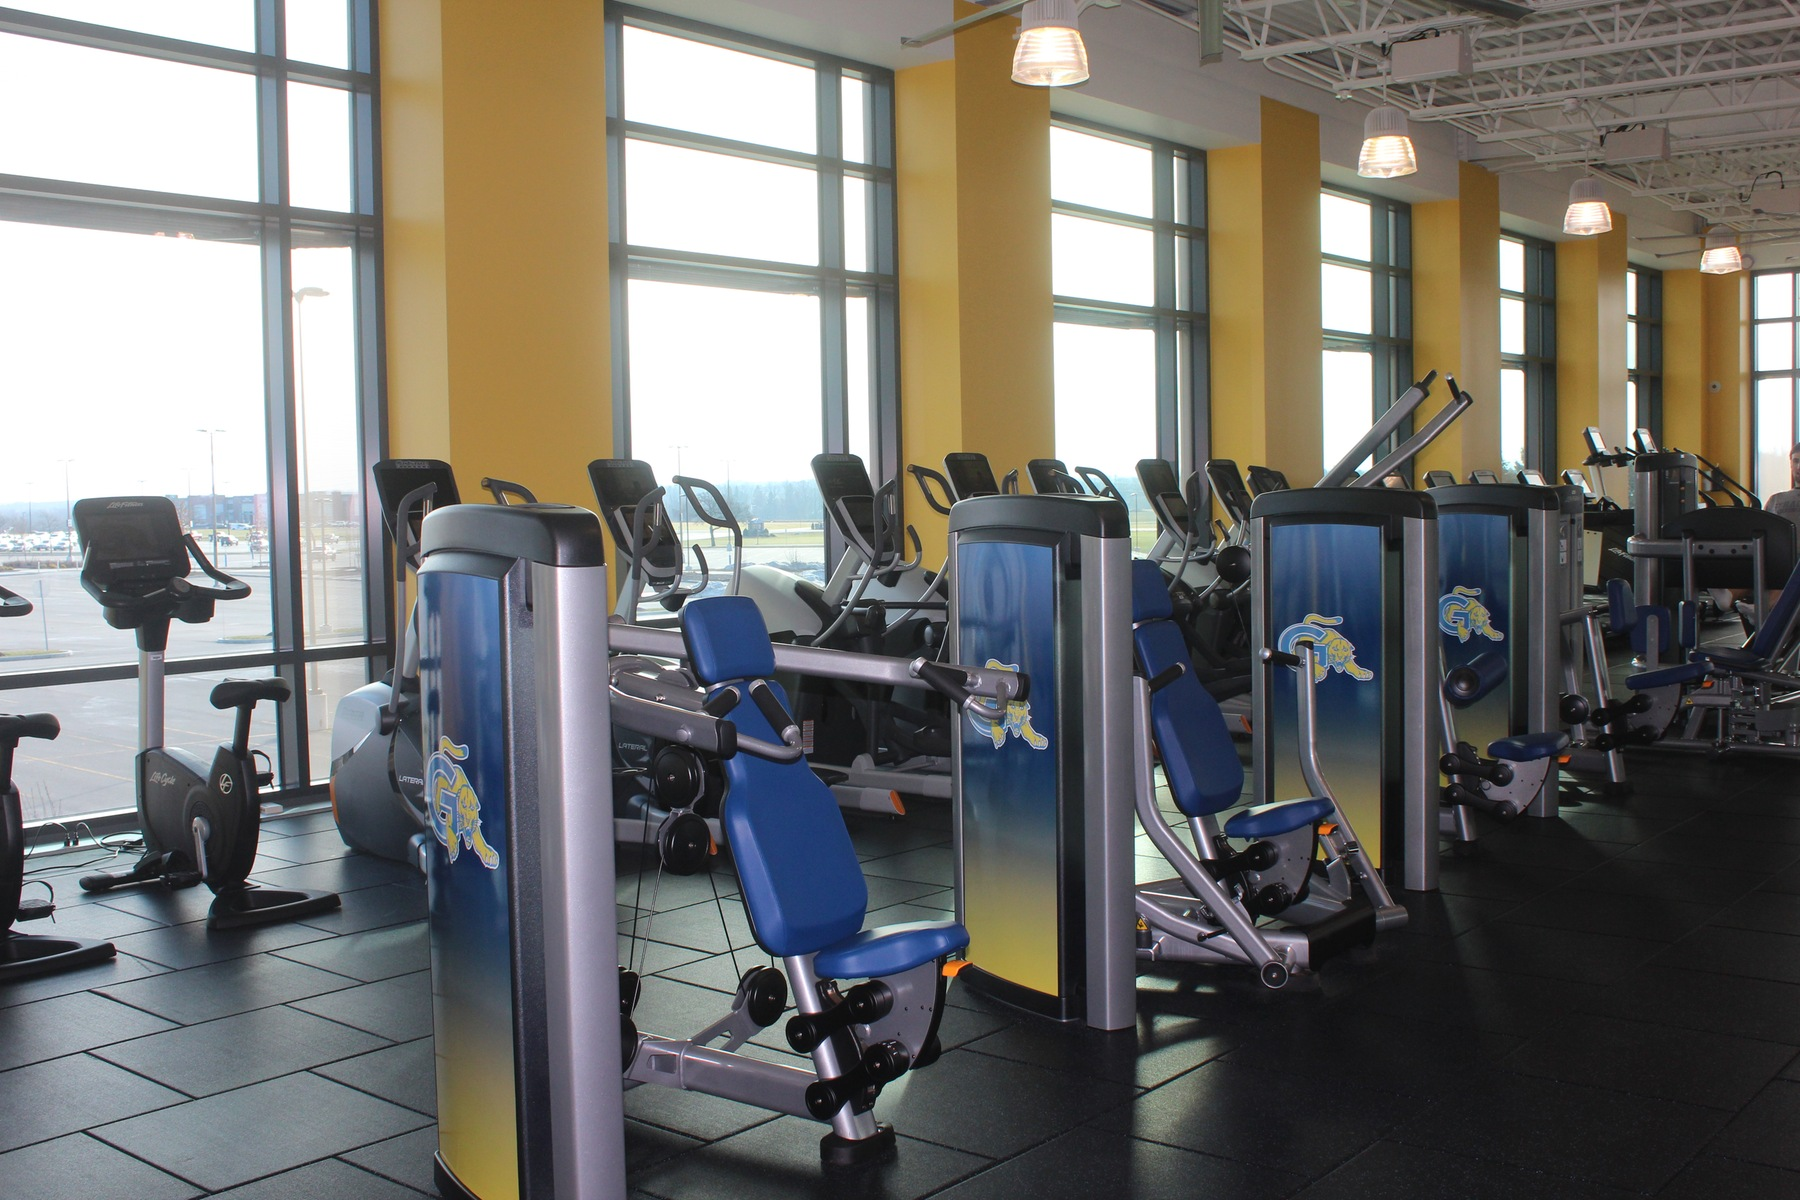 The state of the art Fitness Center located inside the Richard C Call Arena